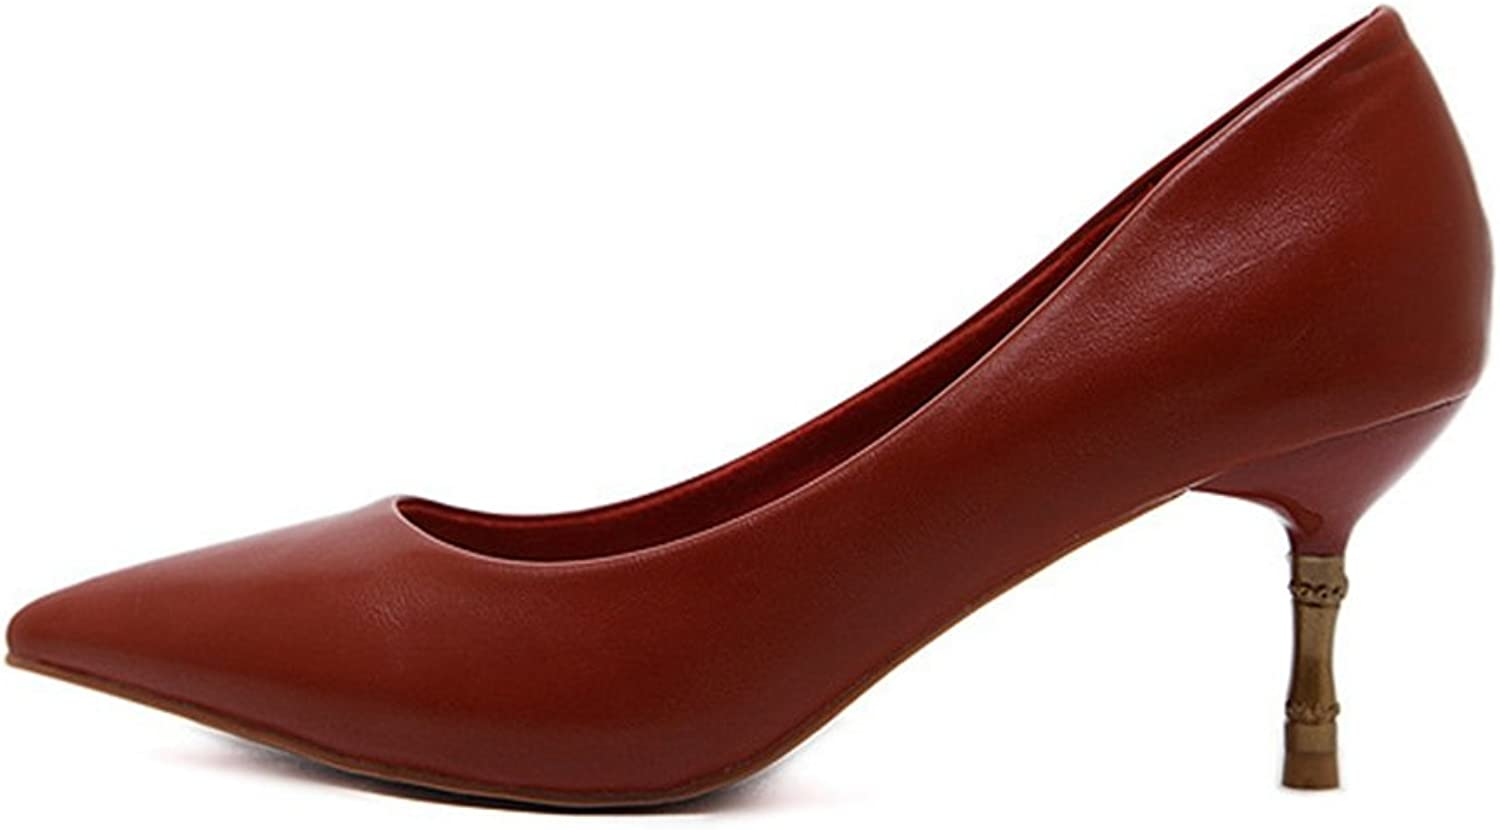 T-JULY Women Fashion Pointed Toe High Heels Slip On Flats Casual Loafers shoes